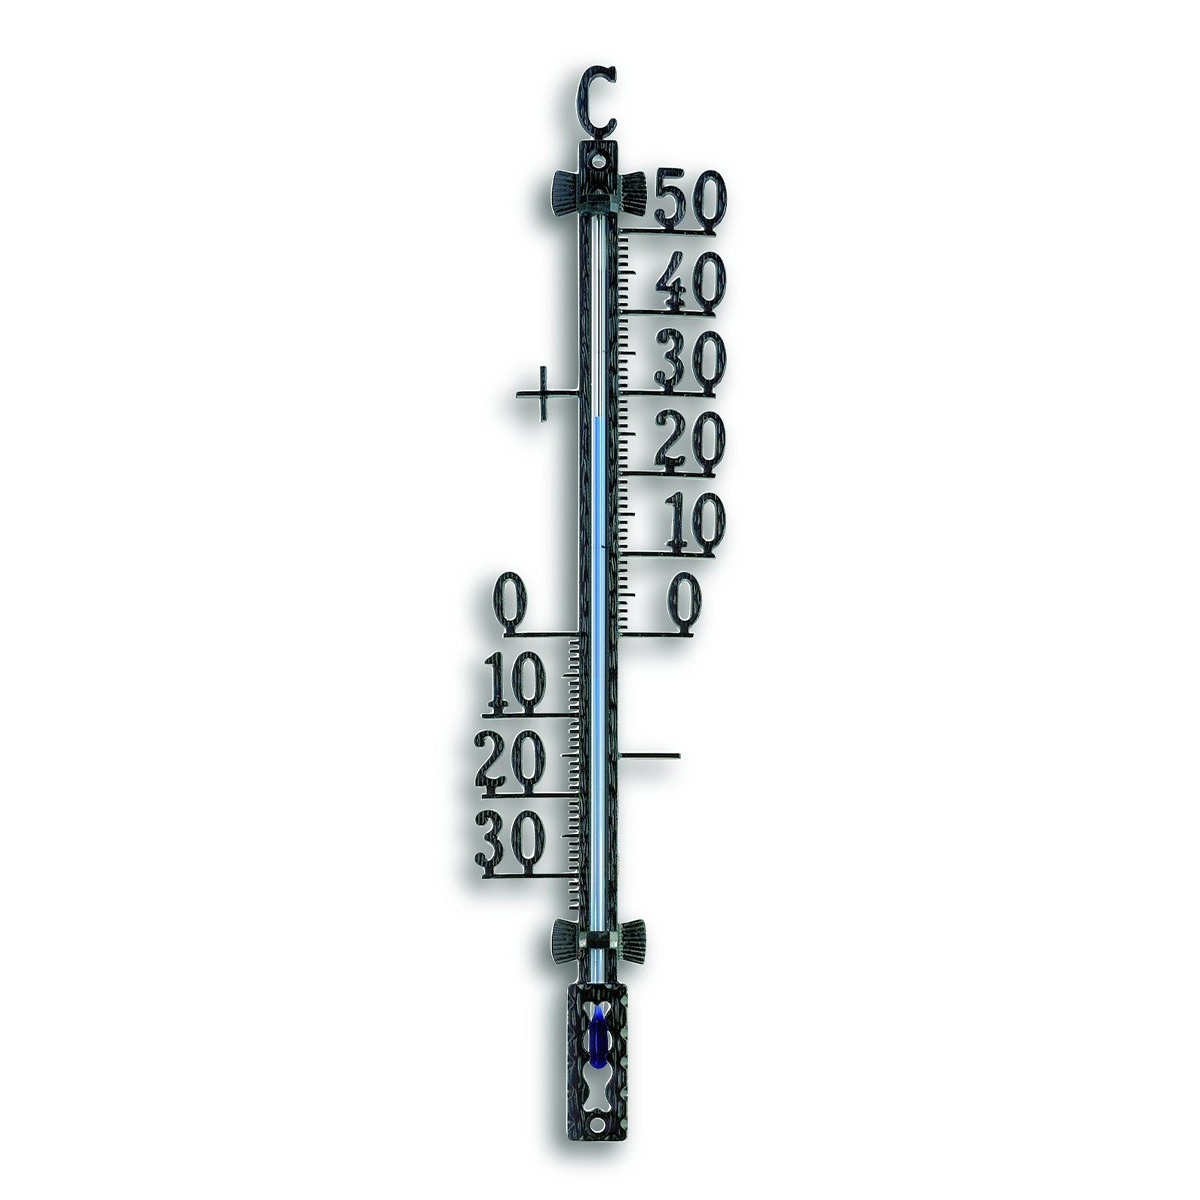 12-5000-analoges-aussenthermometer-metall-1200x1200px.jpg